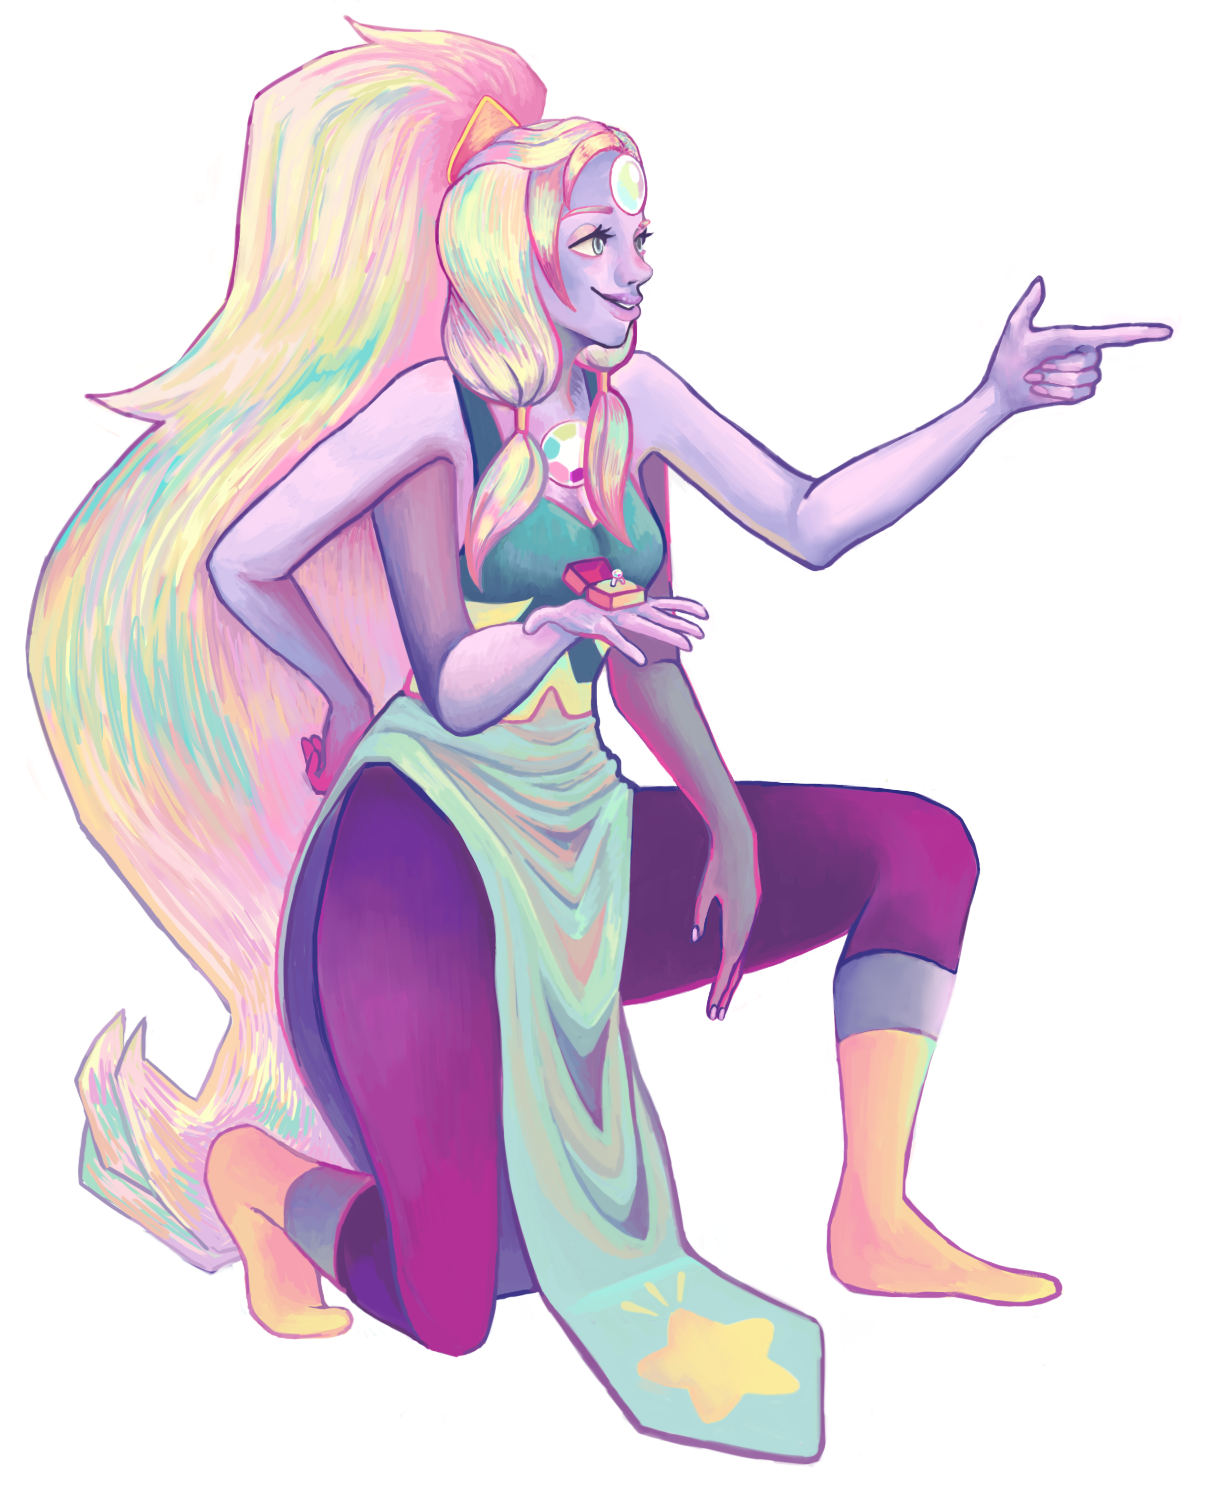 giant colorful woman down on one knee, ready for marriage